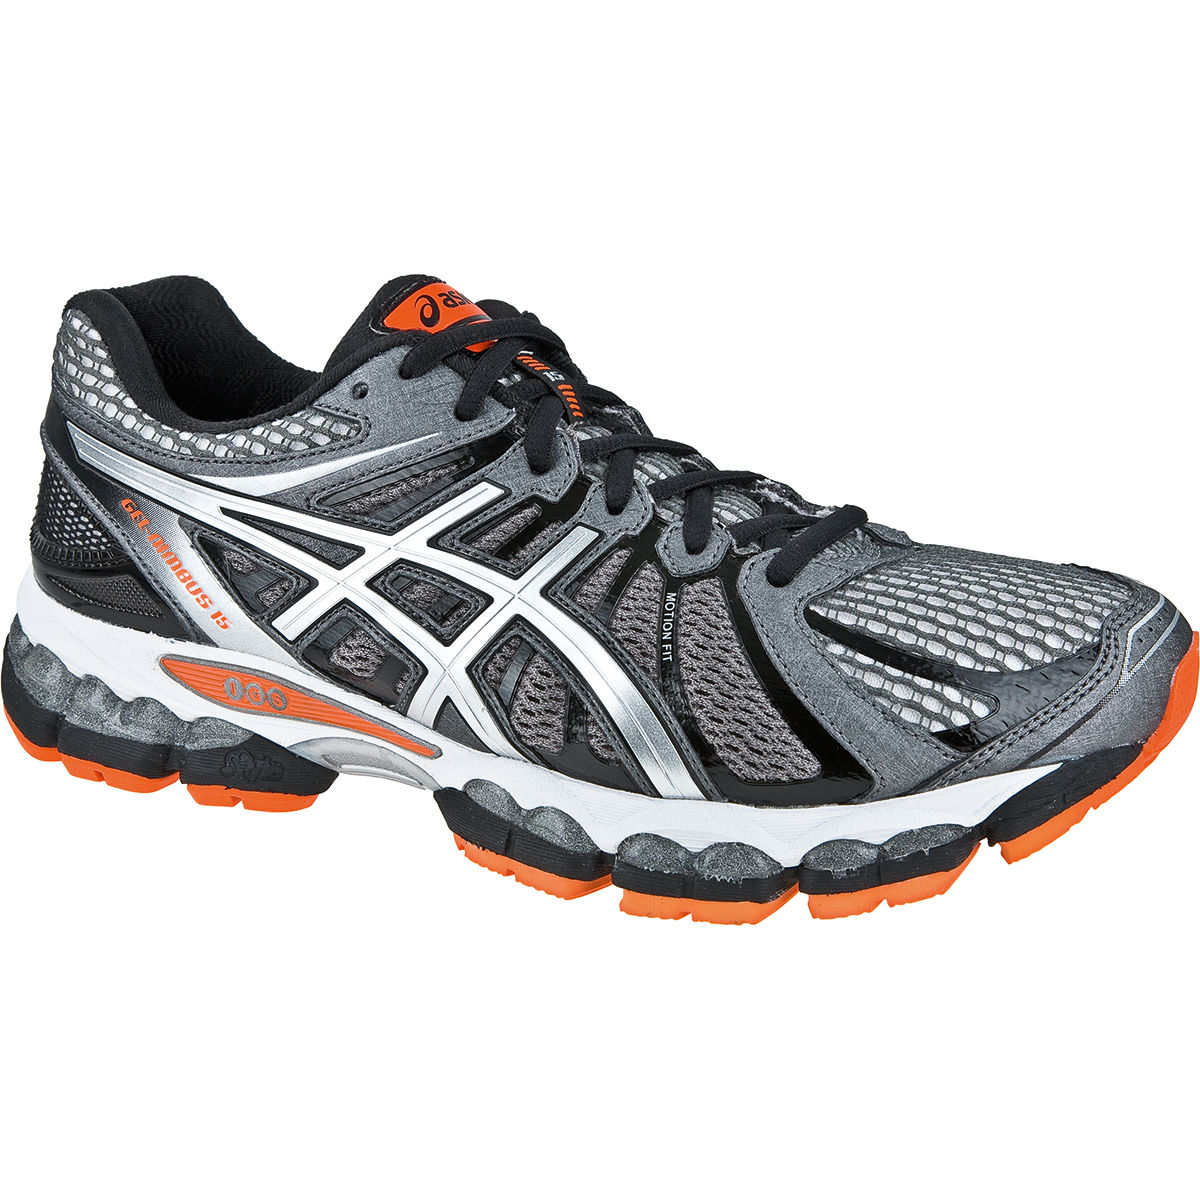 asics gel nimbus 15 schuhe weite passform 4e h w 13 laufschuhe ged mpft wiggle. Black Bedroom Furniture Sets. Home Design Ideas